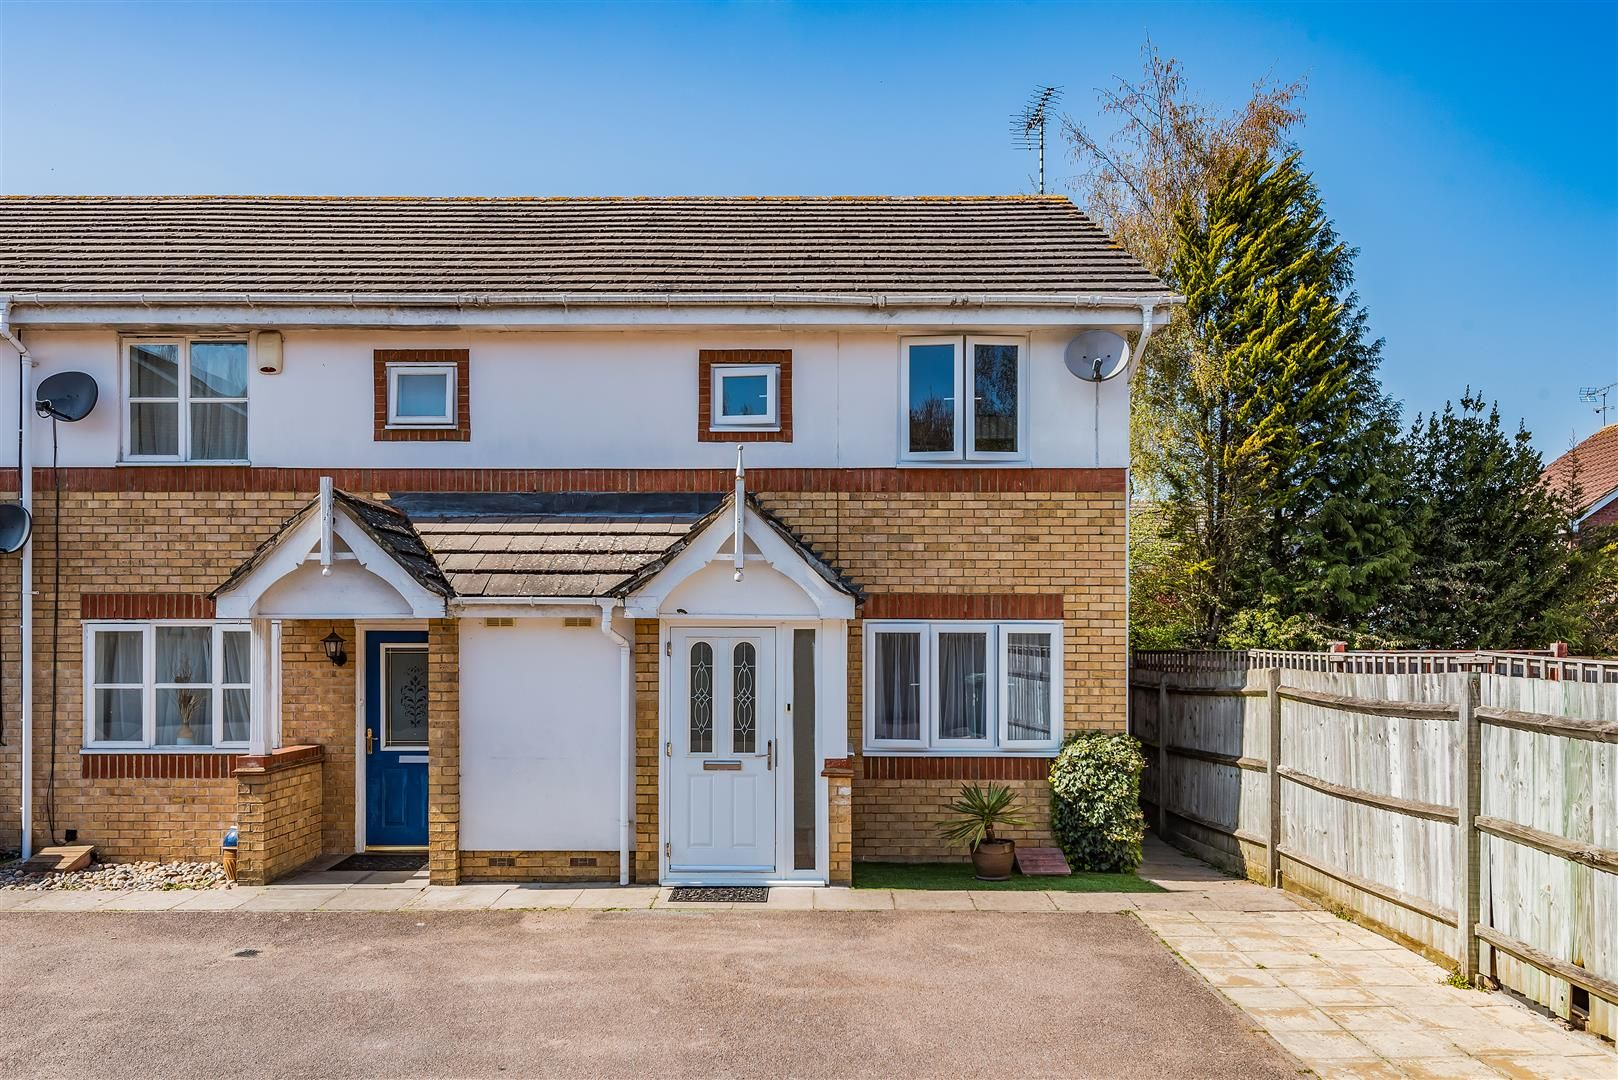 Property photo 1 of 12. Heckford Close - Front.Jpg